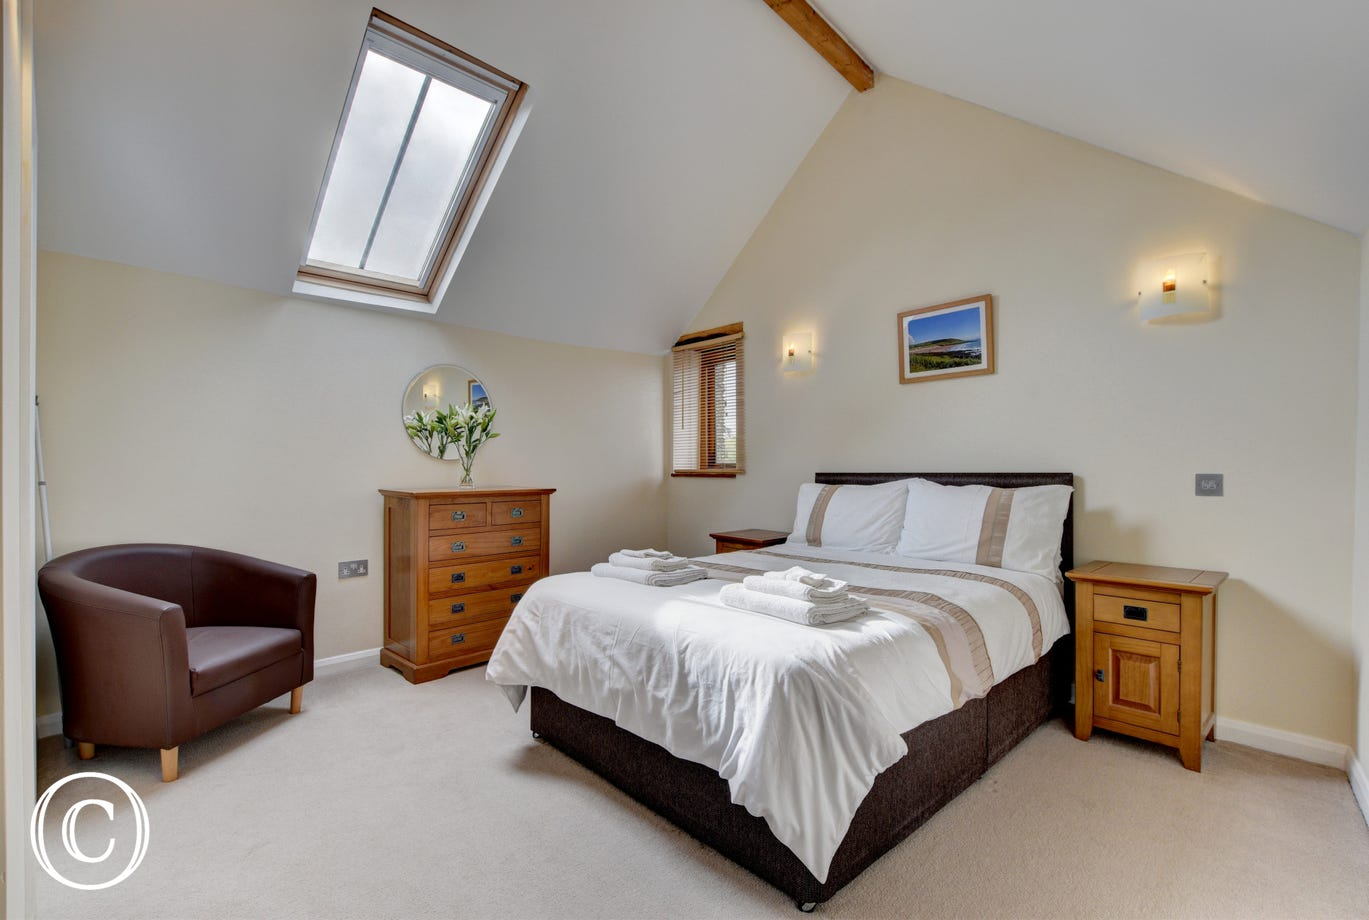 The attractive double bedroom which benefits from a full ensuite bathroom